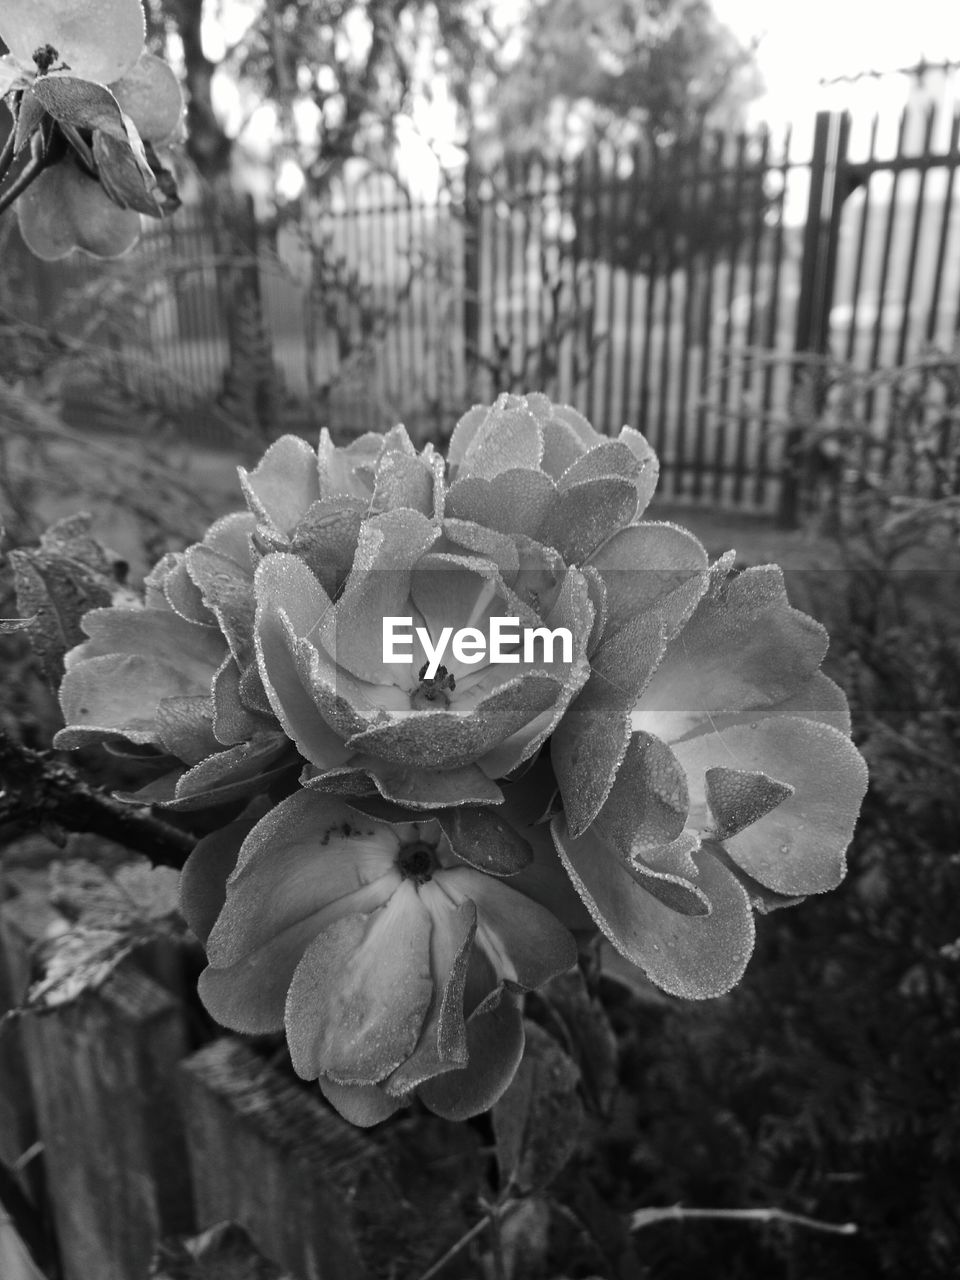 flower, plant, petal, nature, focus on foreground, growth, beauty in nature, outdoors, blooming, flower head, front or back yard, day, park - man made space, no people, fragility, close-up, freshness, tree